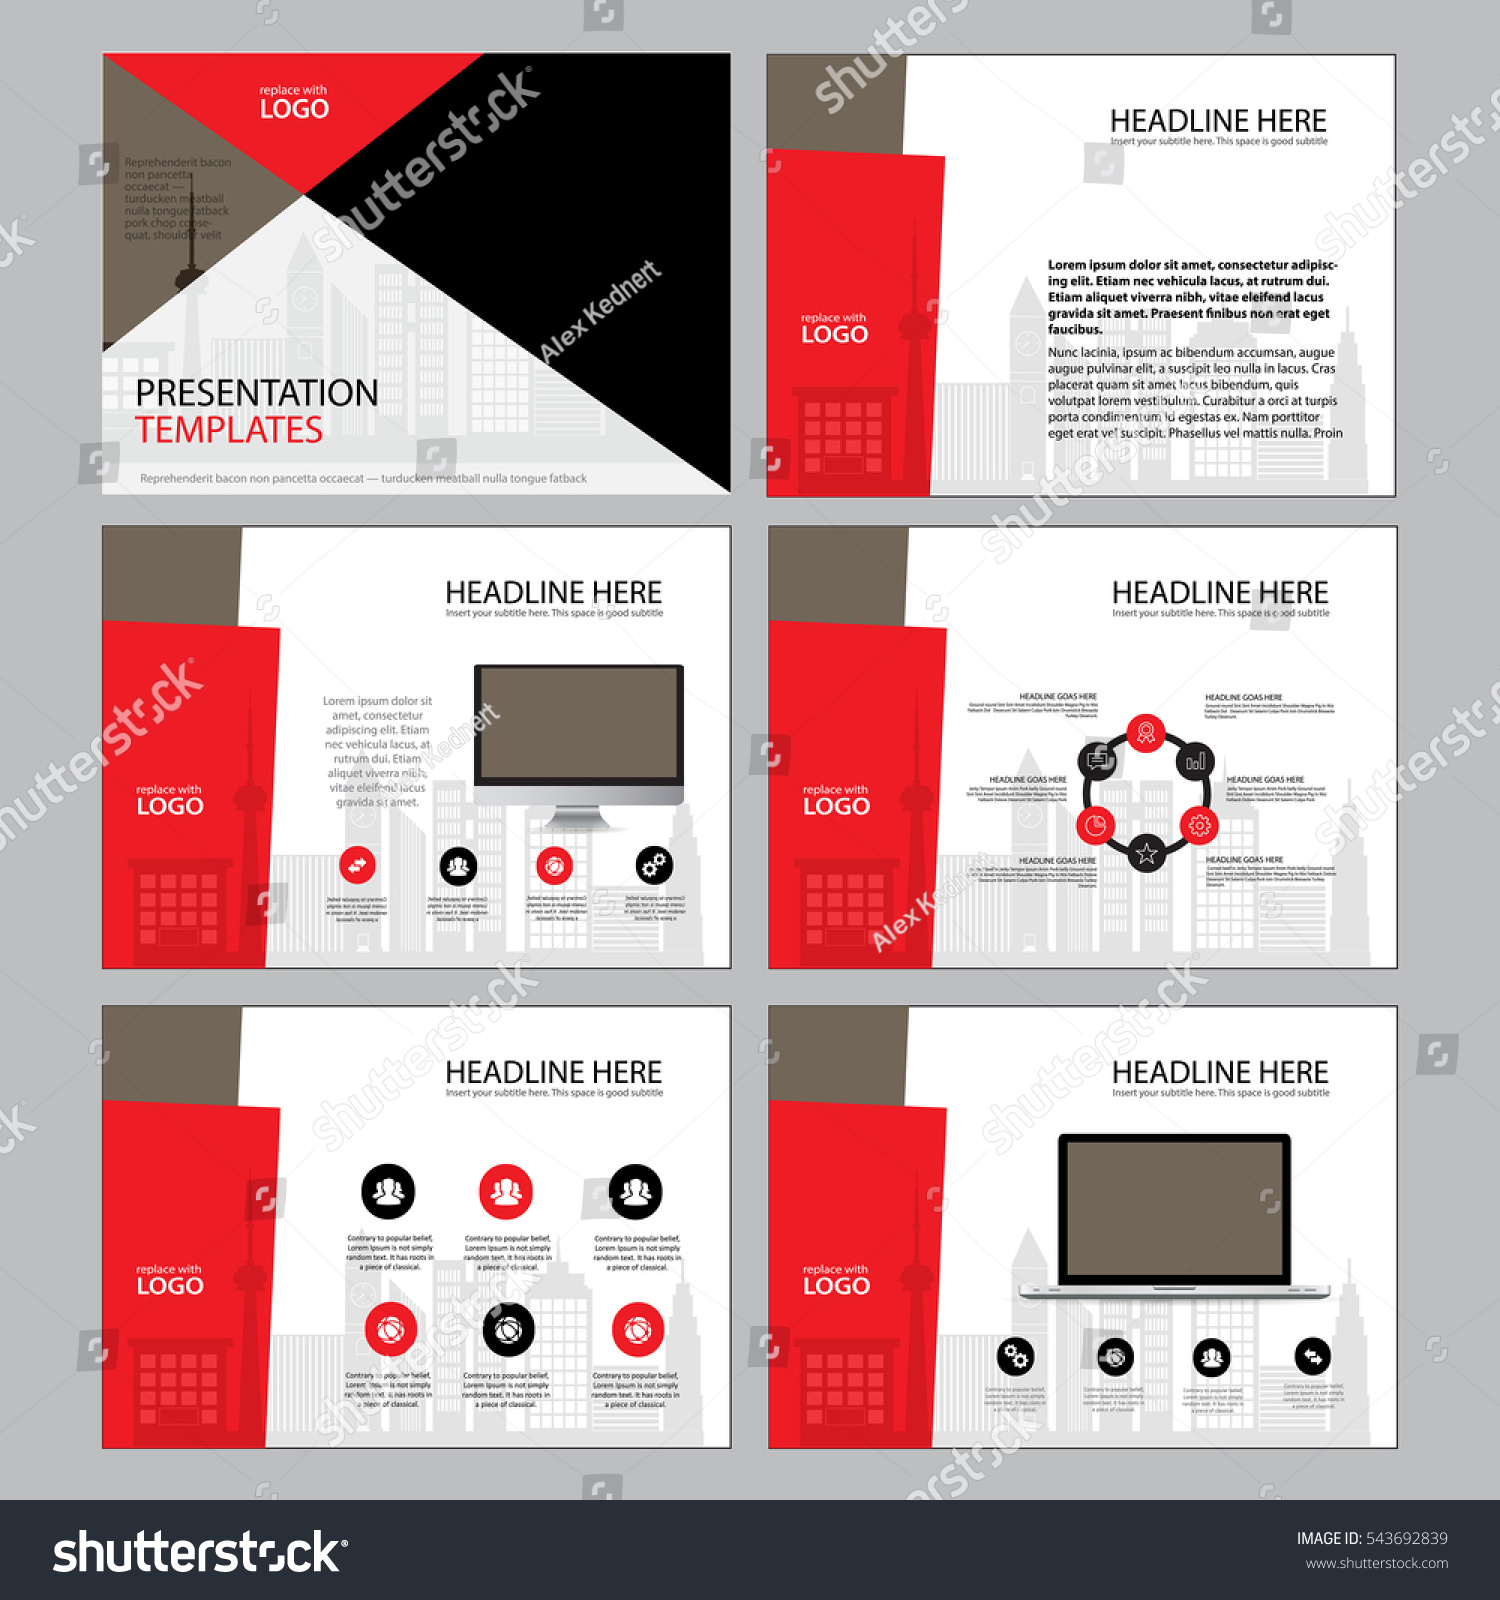 page layout design template presentation brochure stock vector, Presentation templates